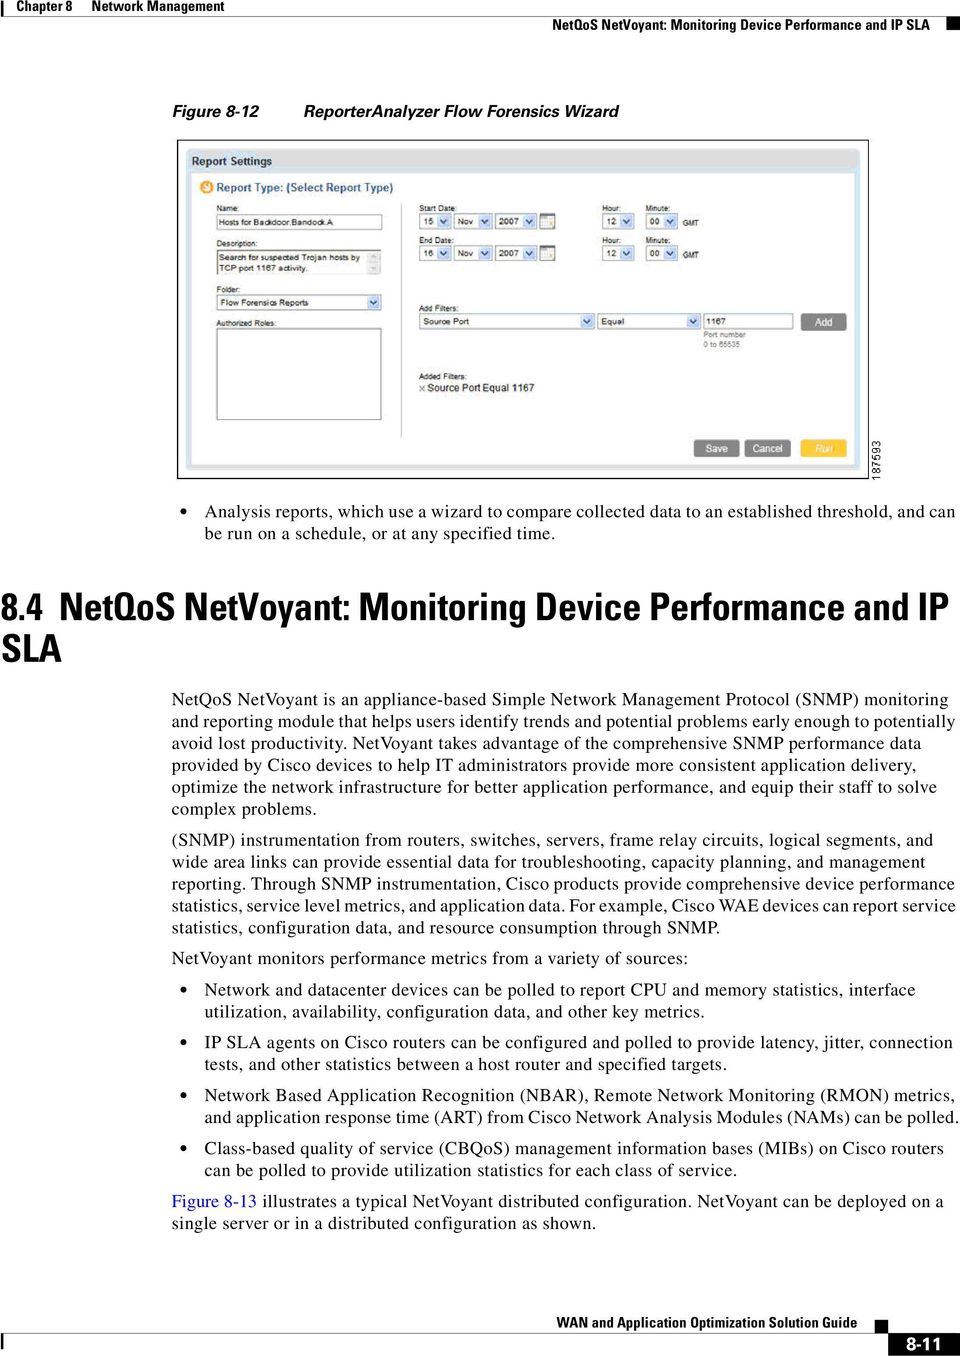 4 NetQoS NetVoyant: Monitoring Device Performance and IP SLA NetQoS NetVoyant is an appliance-based Simple Protocol (SNMP) monitoring and reporting module that helps users identify trends and